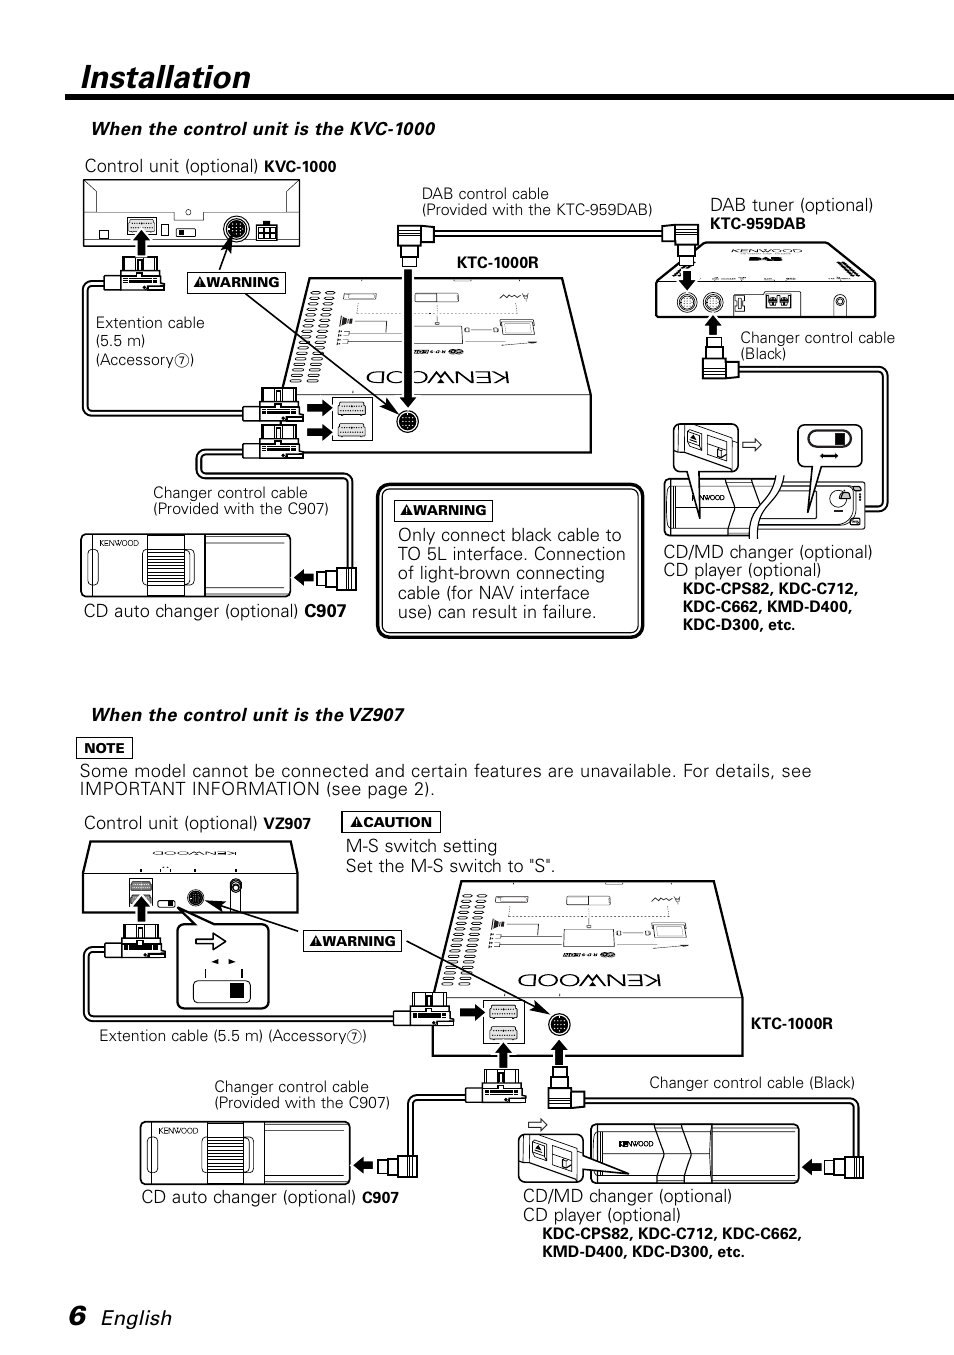 medium resolution of wiring diagram kdc d300 cd player wiring library when the control unit is the kvc 1000